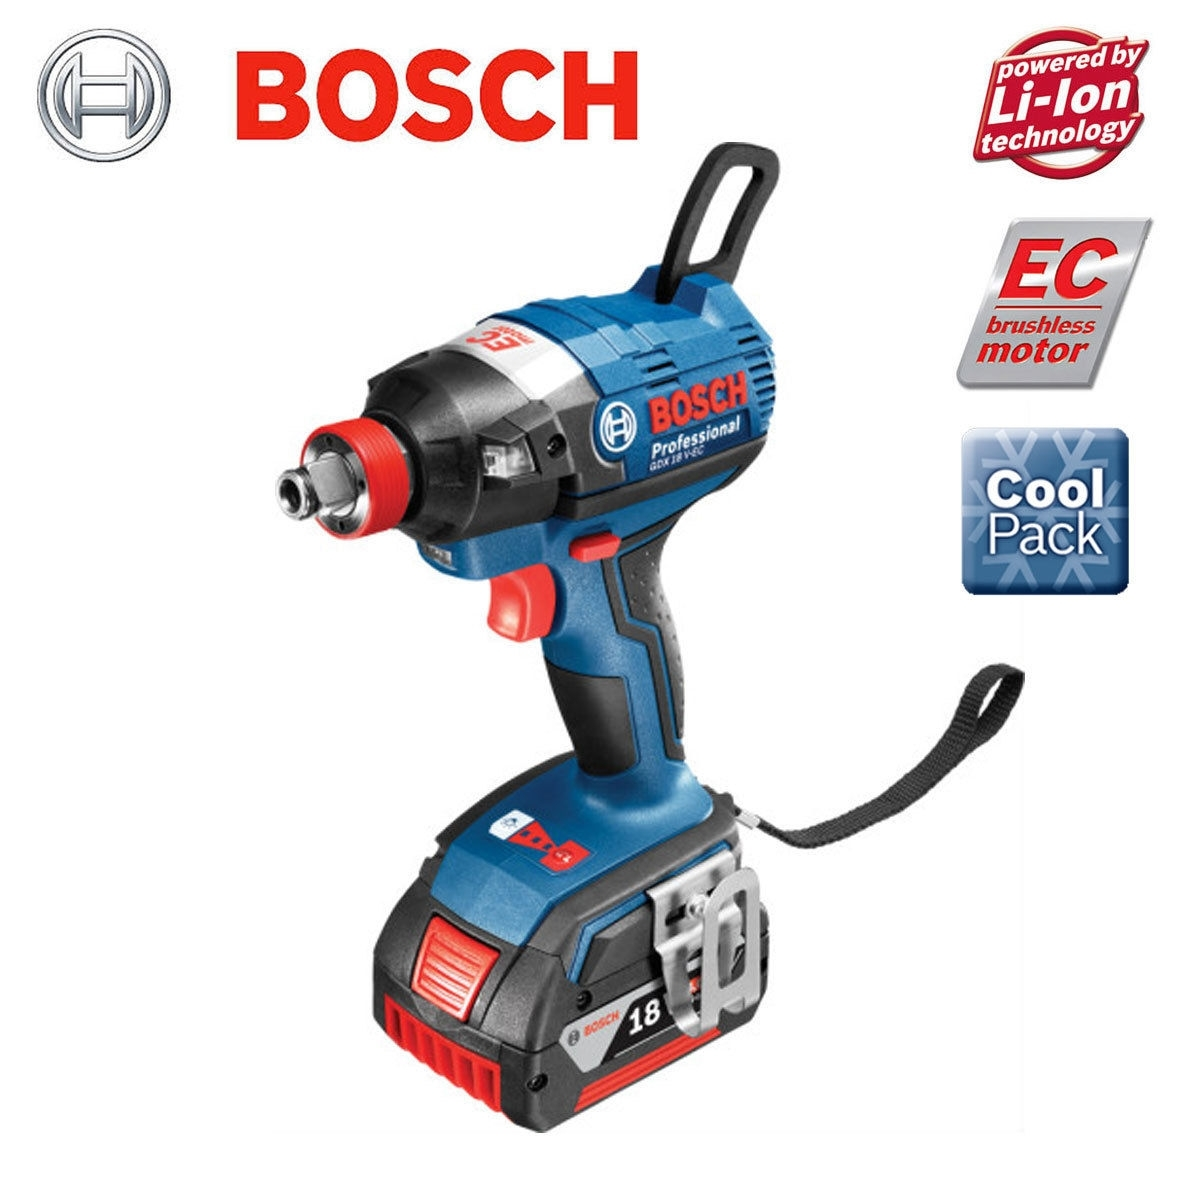 bosch gdx 18v ec brushless cordless impact driver wrench my power tools. Black Bedroom Furniture Sets. Home Design Ideas